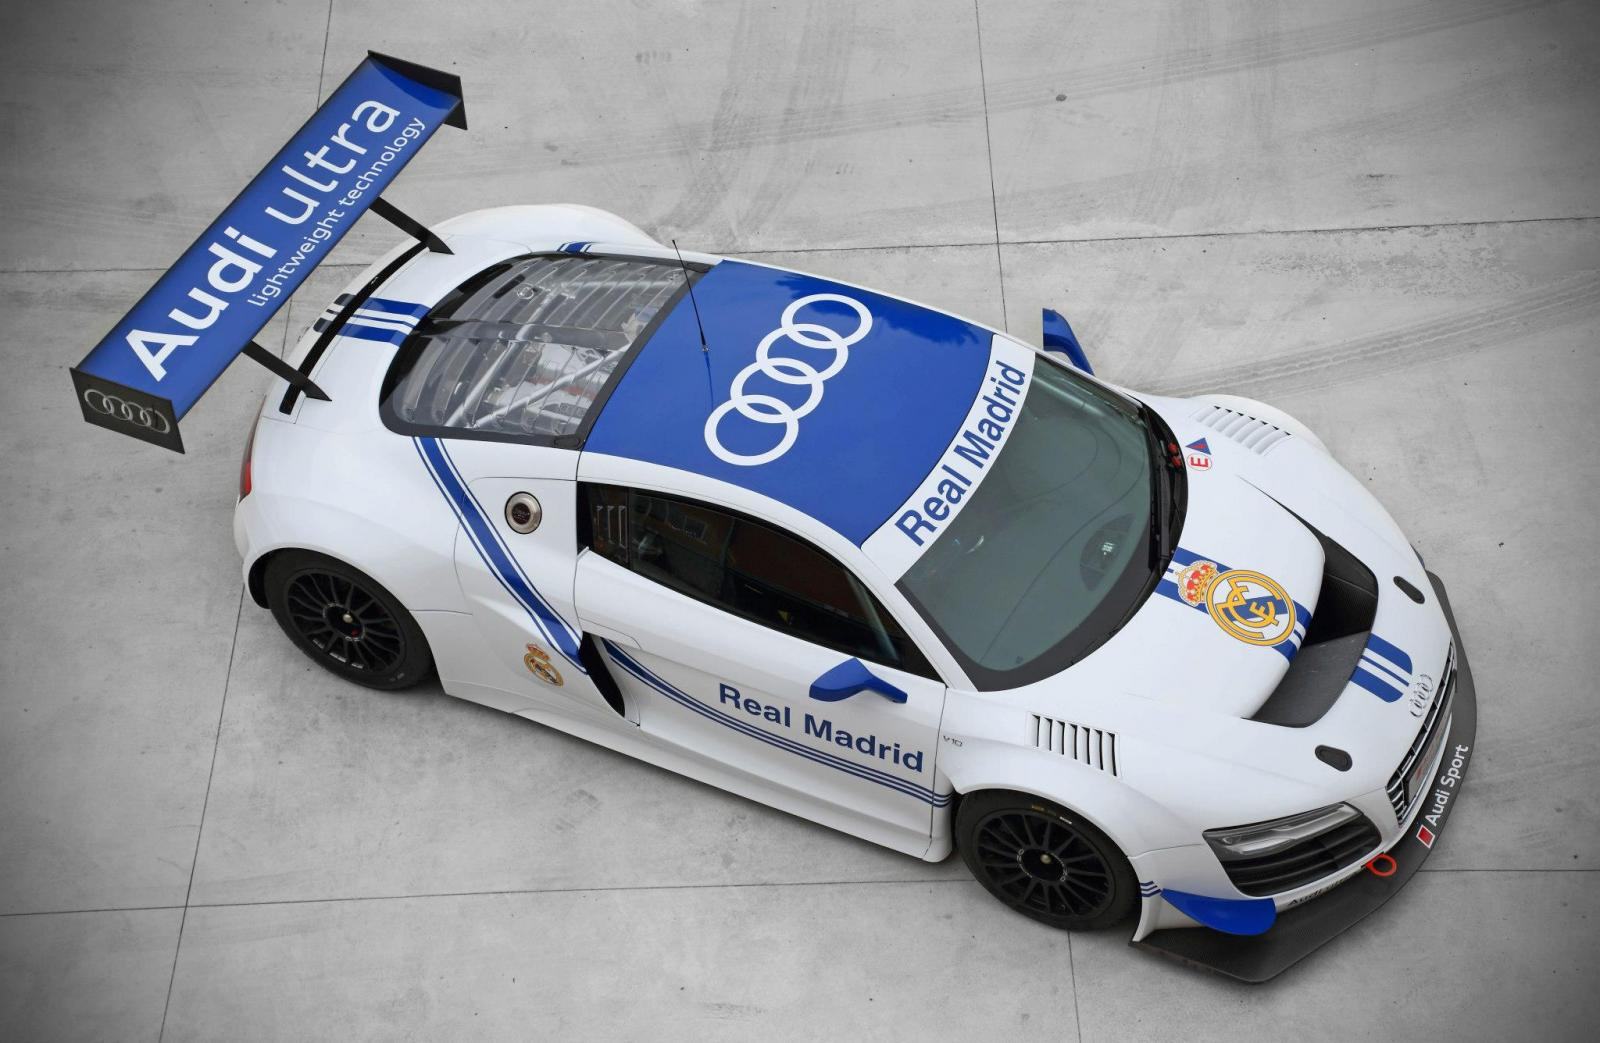 audi r8 lms ultra real madrid edition 09 Audi R8 LMS Ultra Real Madrid Edition